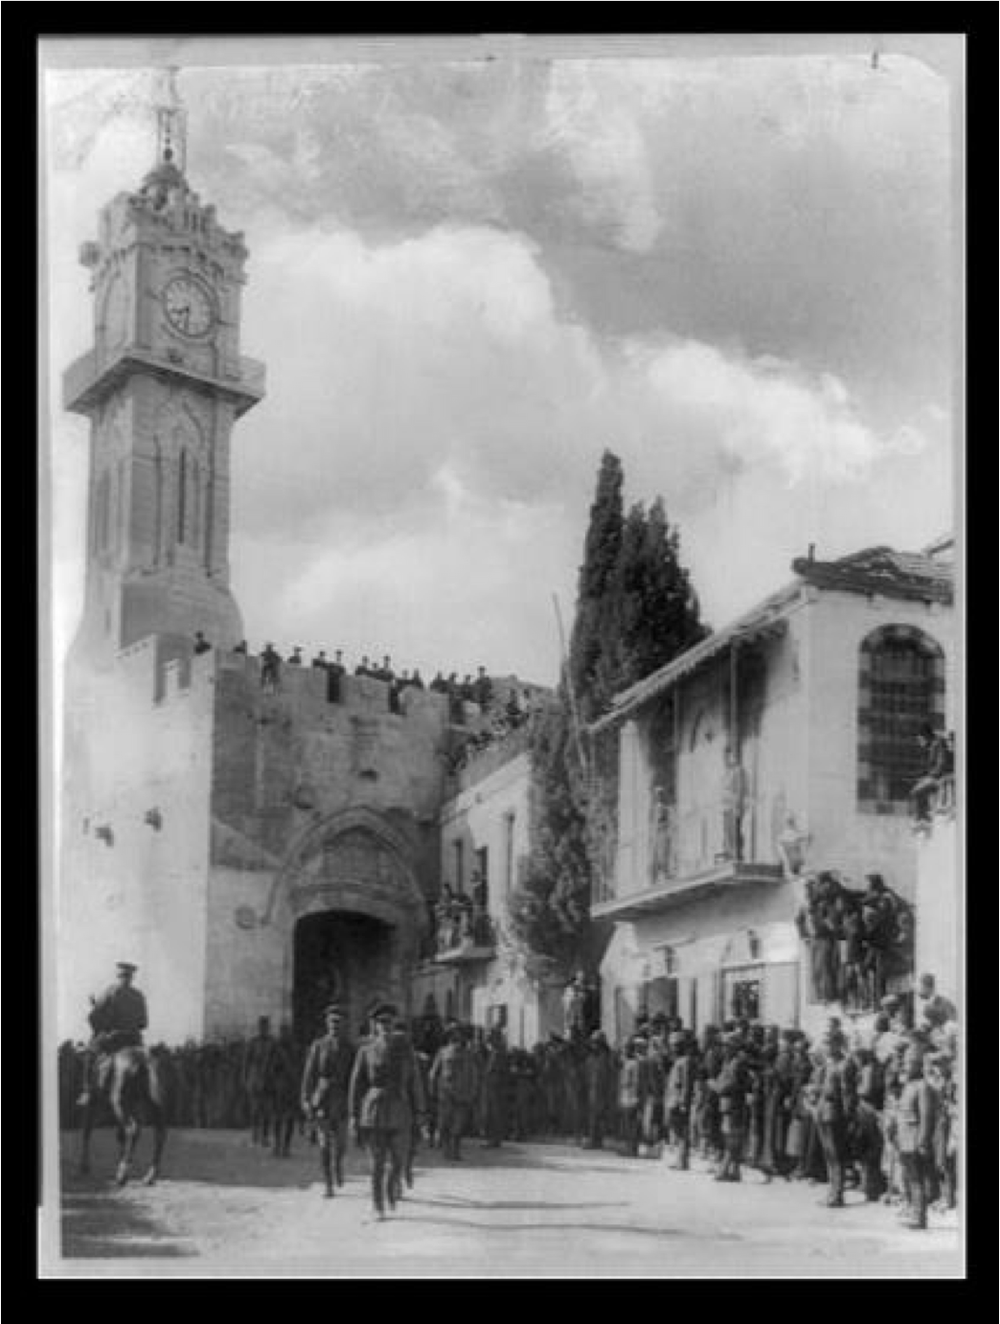 Palestine - Jerusalem. General Allenby's entrance into Jerusalem -the-woman-who-fought-an-empire-gregory-wallance.png